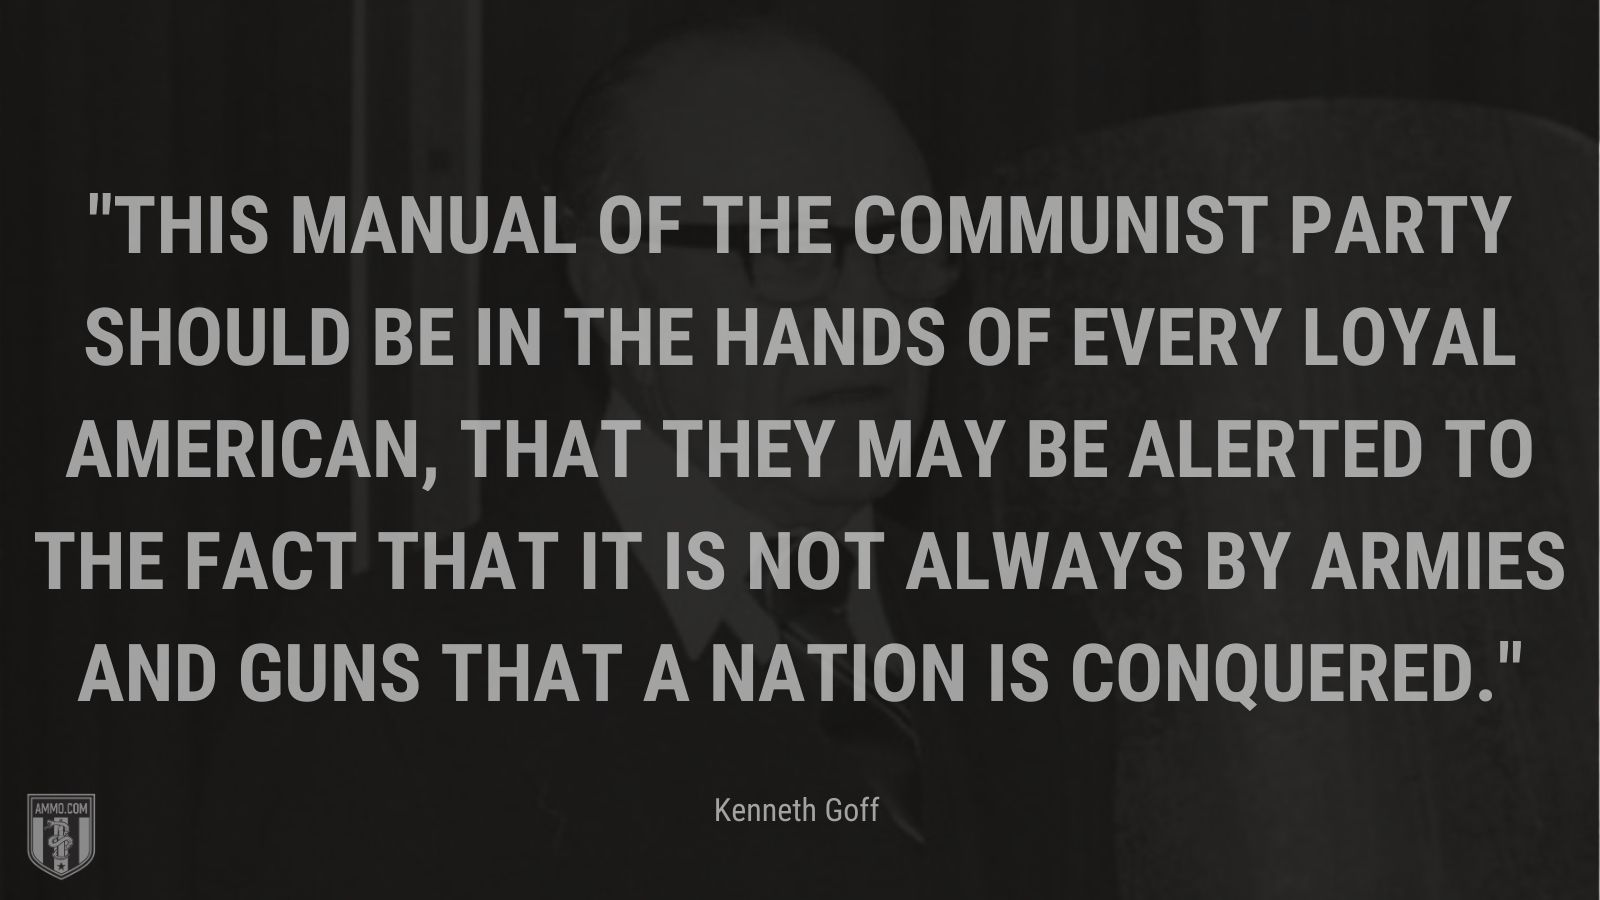 """""""This manual of the Communist Party should be in the hands of every loyal American, that they may be alerted to the fact that it is not always by armies and guns that a nation is conquered. - Kenneth Goff"""